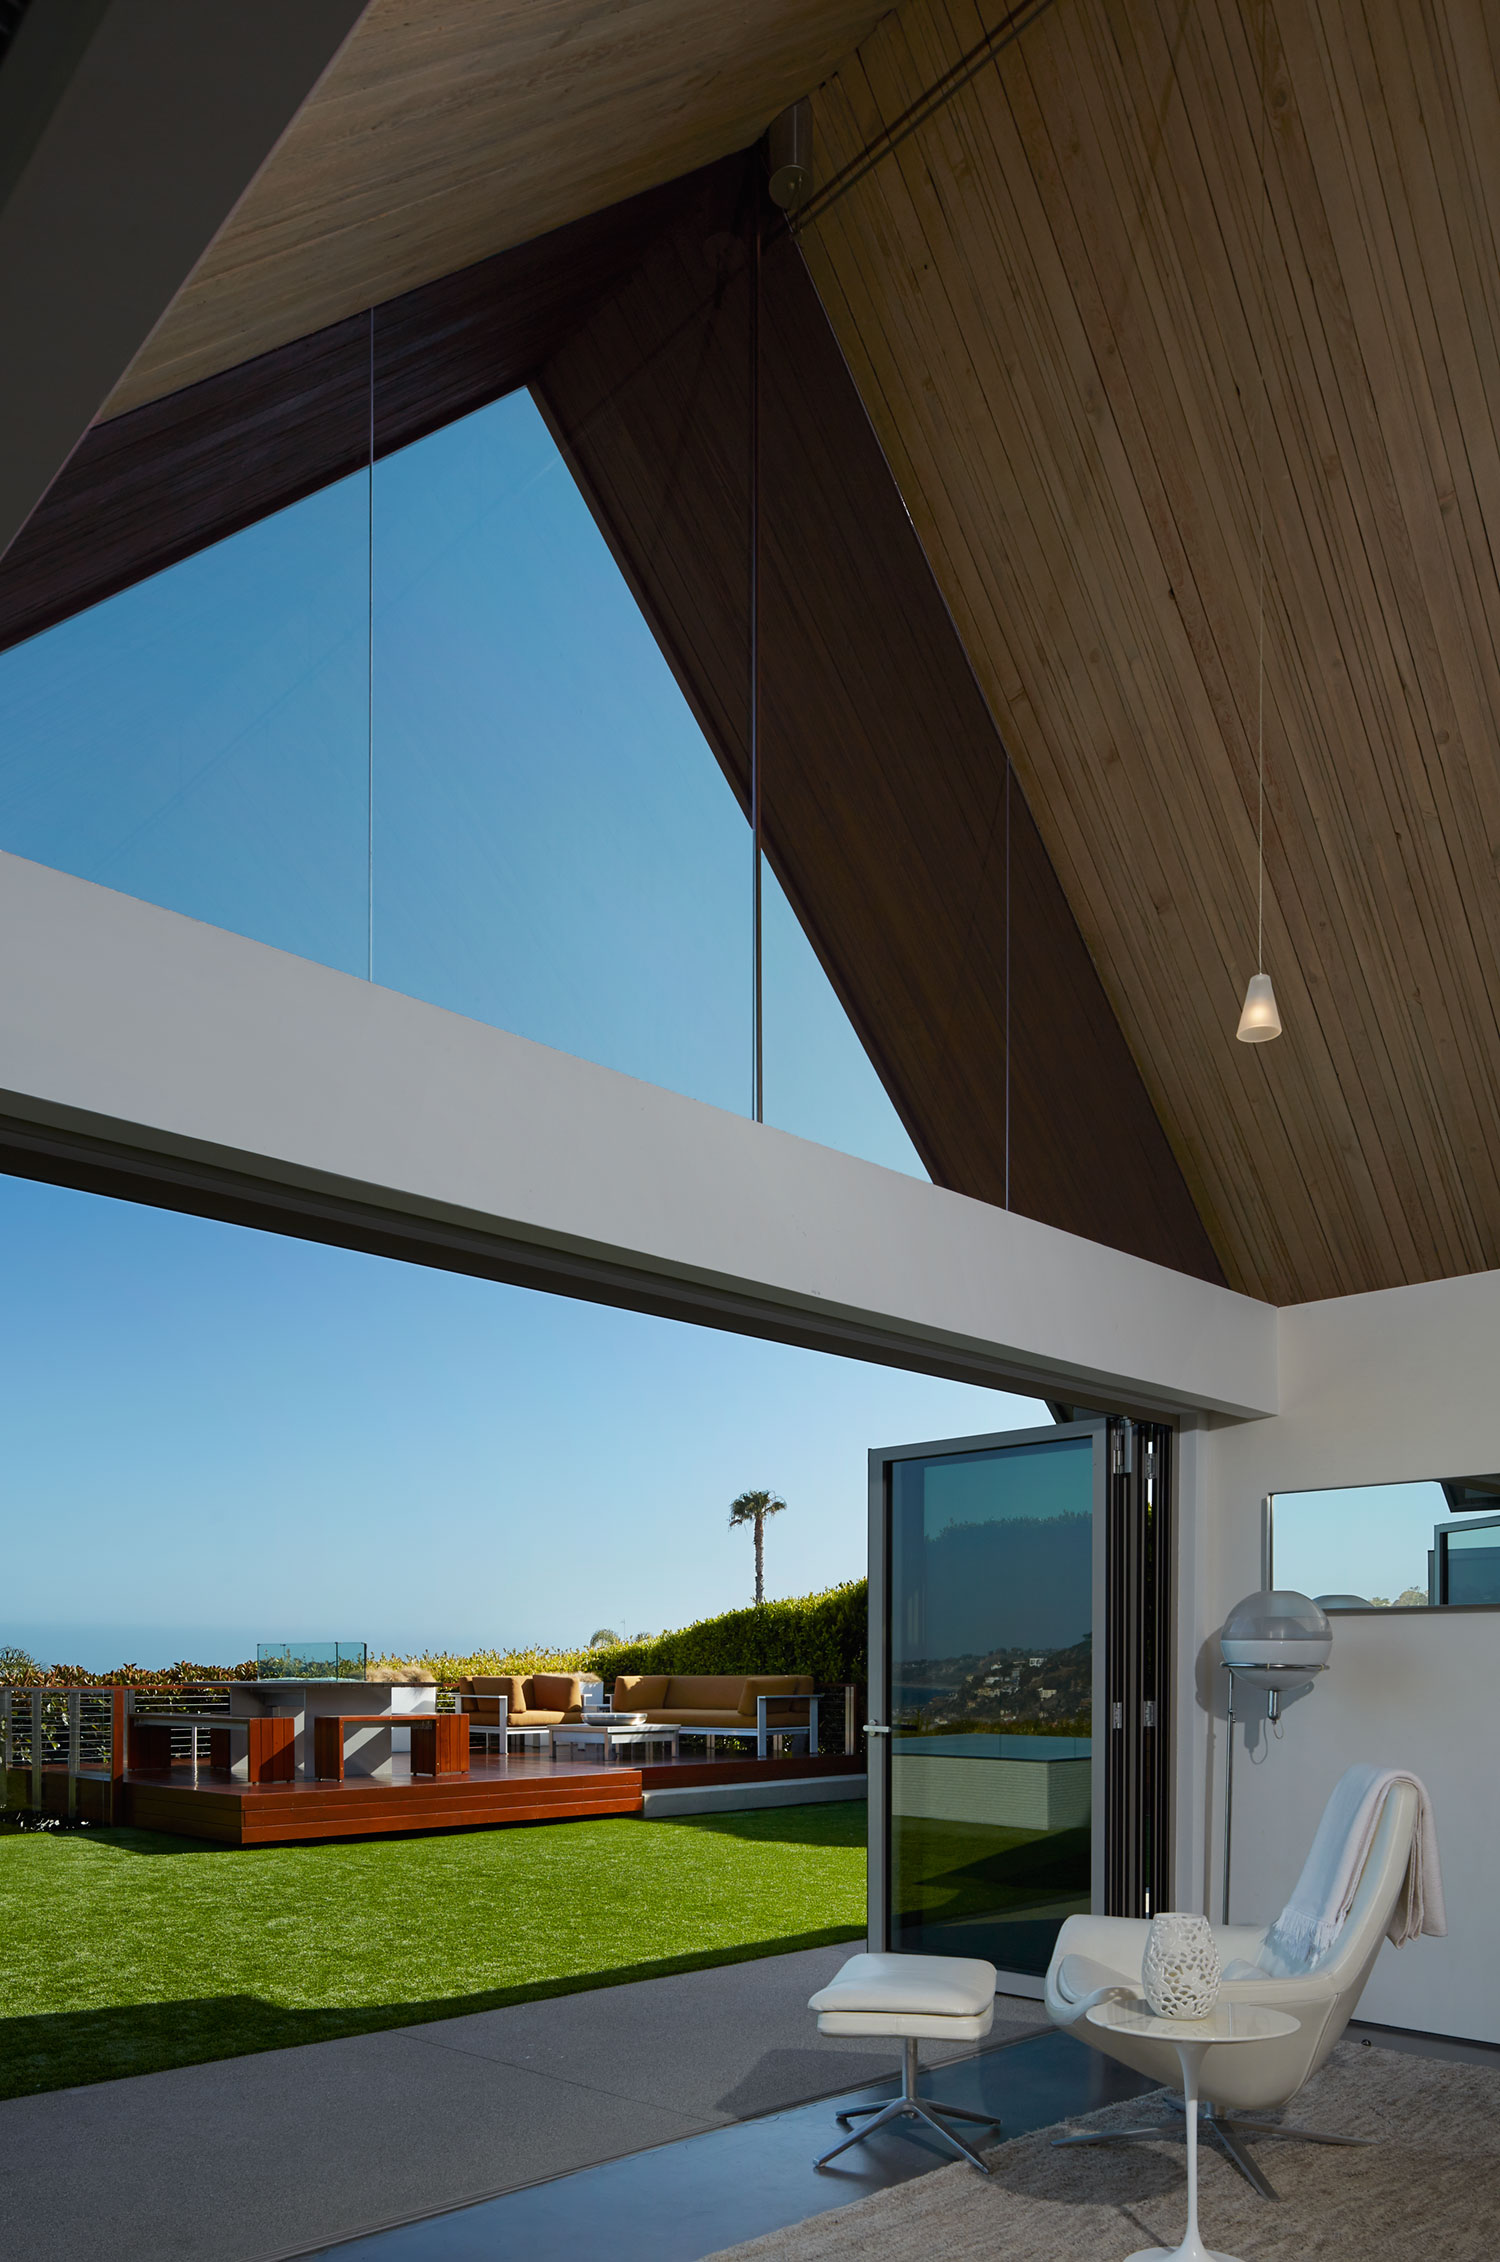 modern-architecture-residential-indoor-outdoor-inspirational-view-shubindonaldson-wakecrest-residence-1